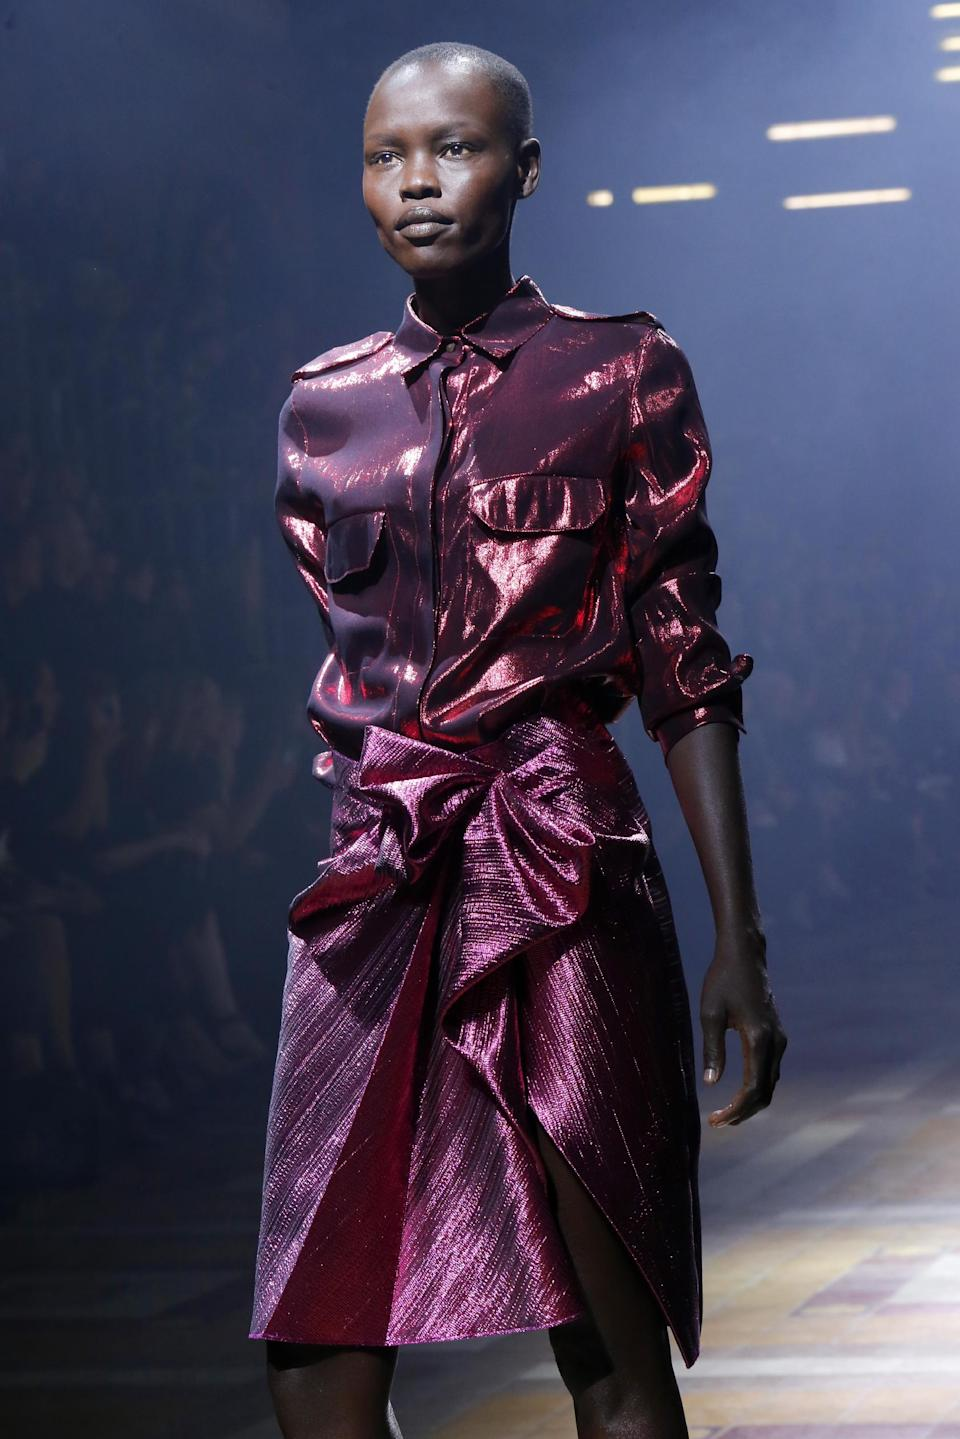 Model Alek Wek presents a creation as part of Lanvin's ready-to-wear Spring/Summer 2014 fashion collection, presented Thursday, Sept. 26, 2013 in Paris. (AP Photo/Jacques Brinon)